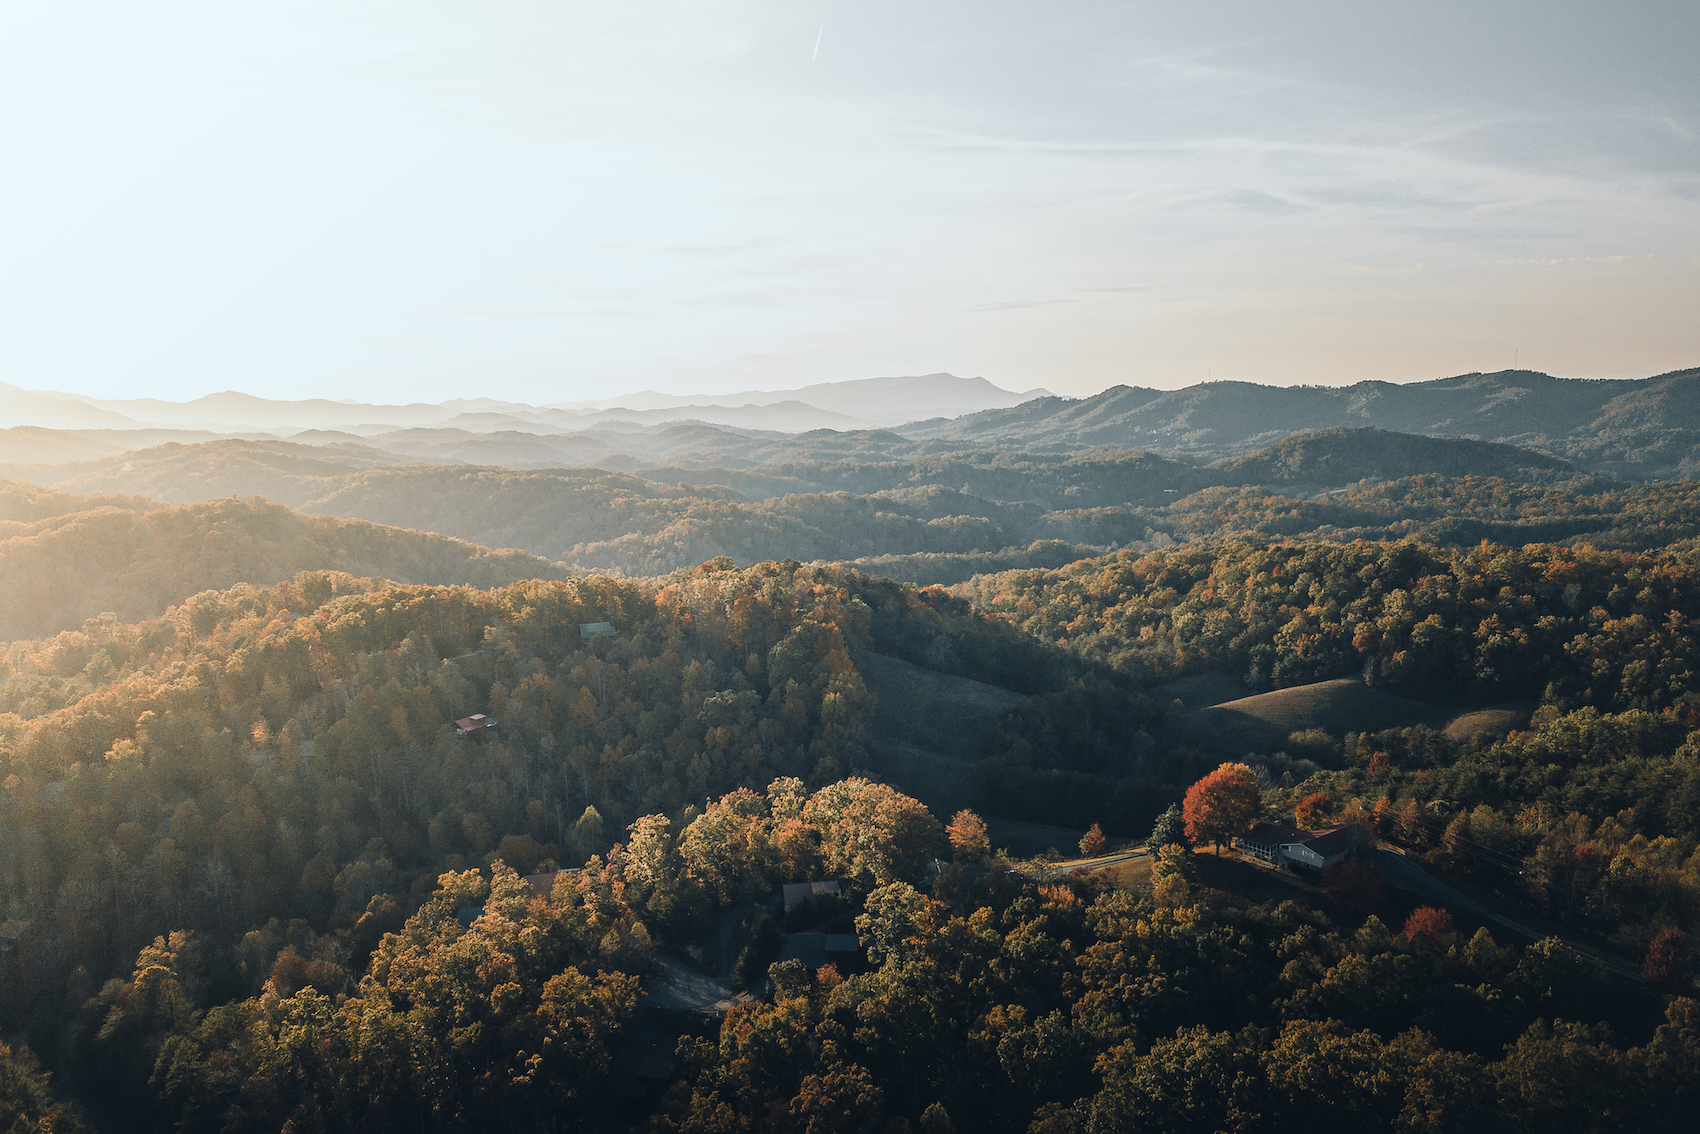 A picturesque image of the smoky mountains from the air. Some of the views you will have when staying at the AirBNB's owned by Tennessee Cider Company's owners